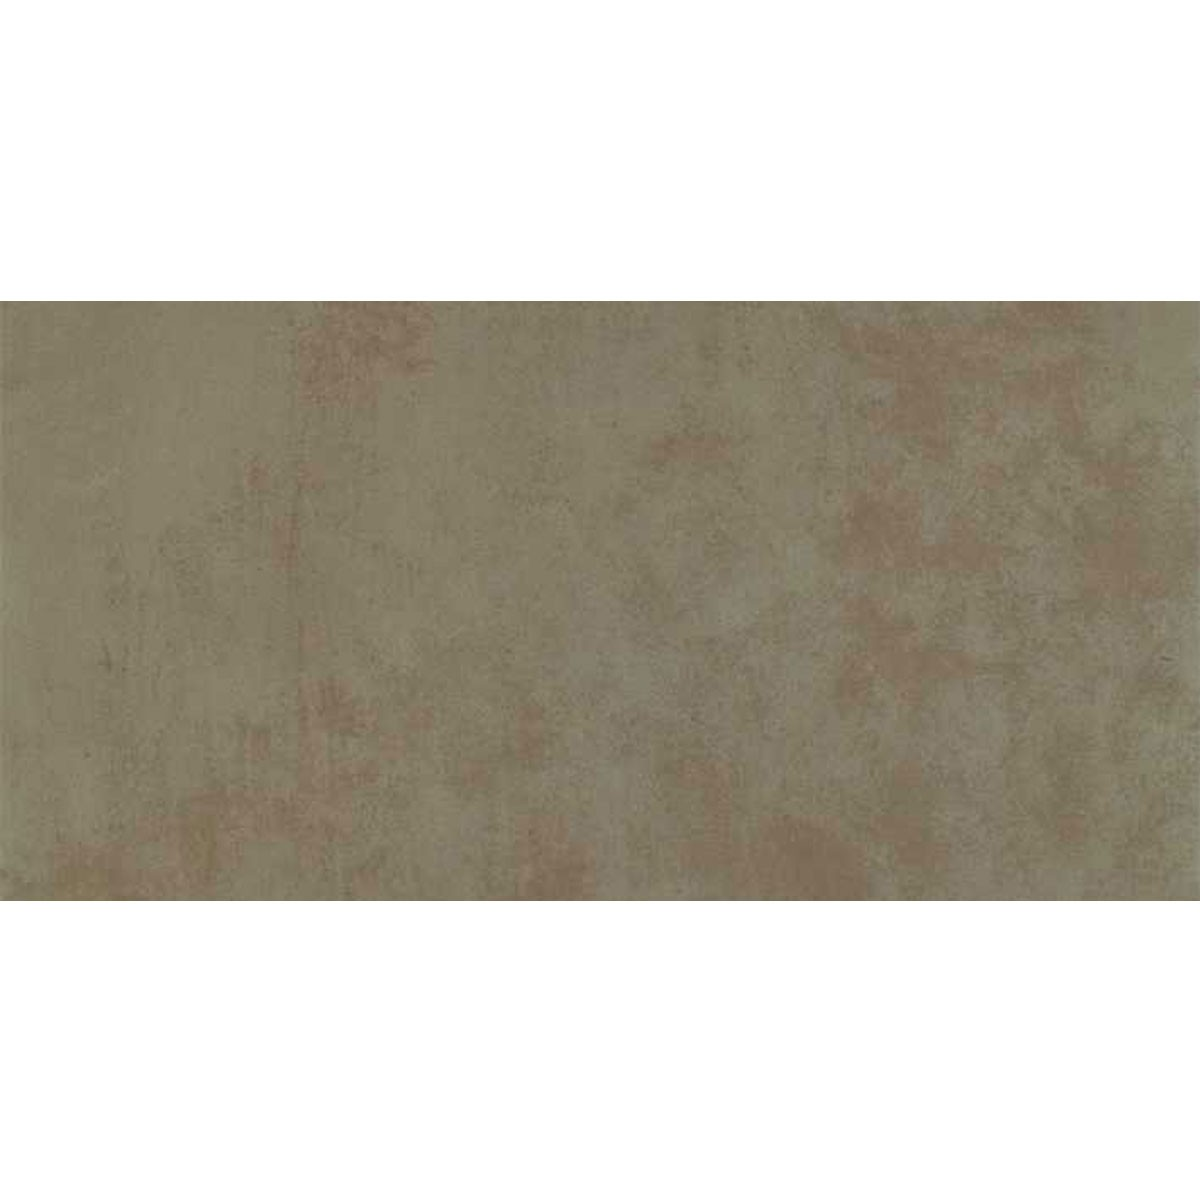 24 x 12 In. Brown Porcelain Floor Tile - 8 Pcs/Case (15.50 sq.ft/Case) (UR60D)